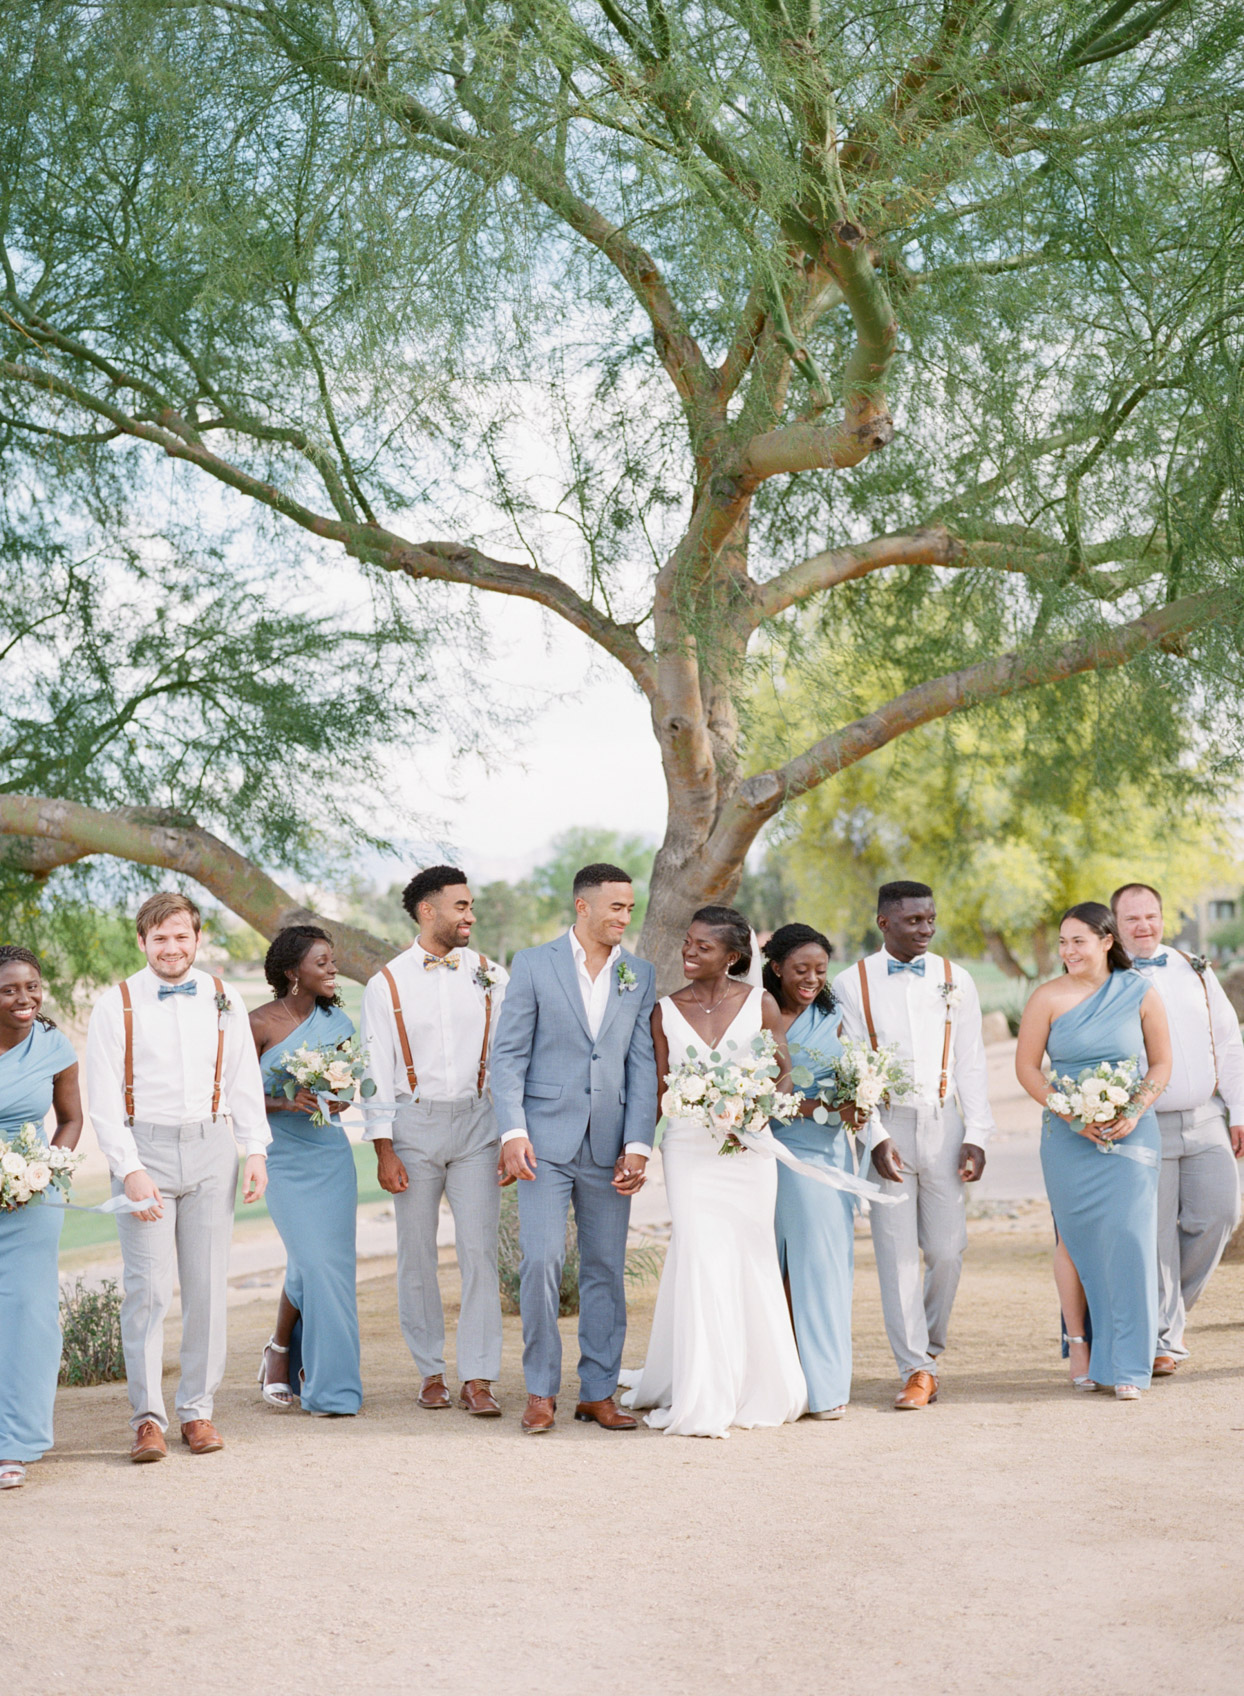 wedding party in white and blue outdoors